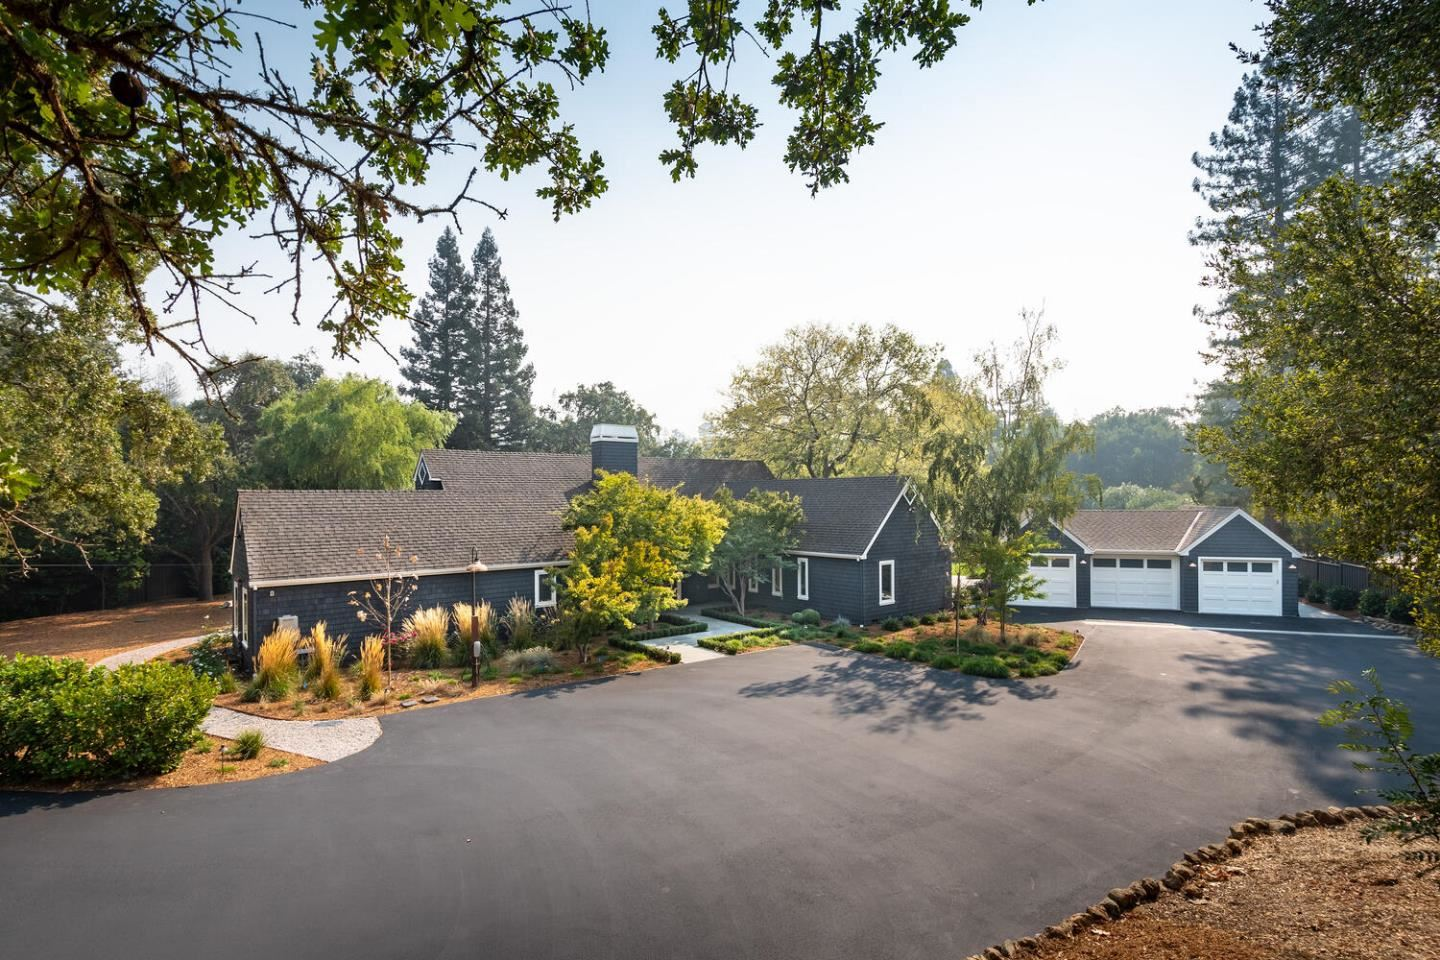 Photo for 27 Sargent LN, ATHERTON, CA 94027 (MLS # ML81814031)